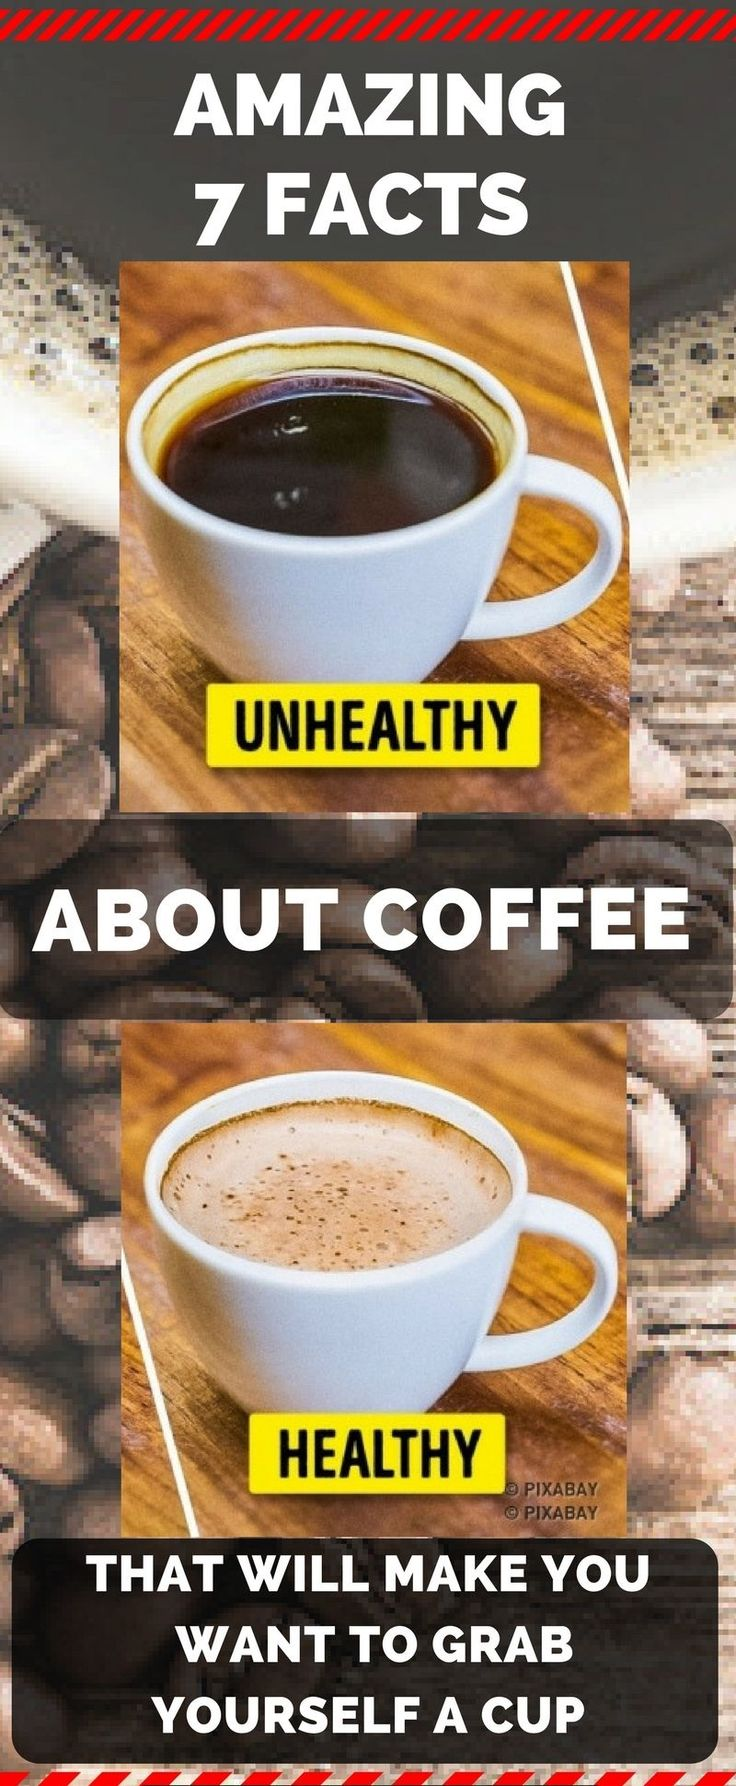 7 facts about coffee that will make you want to grab